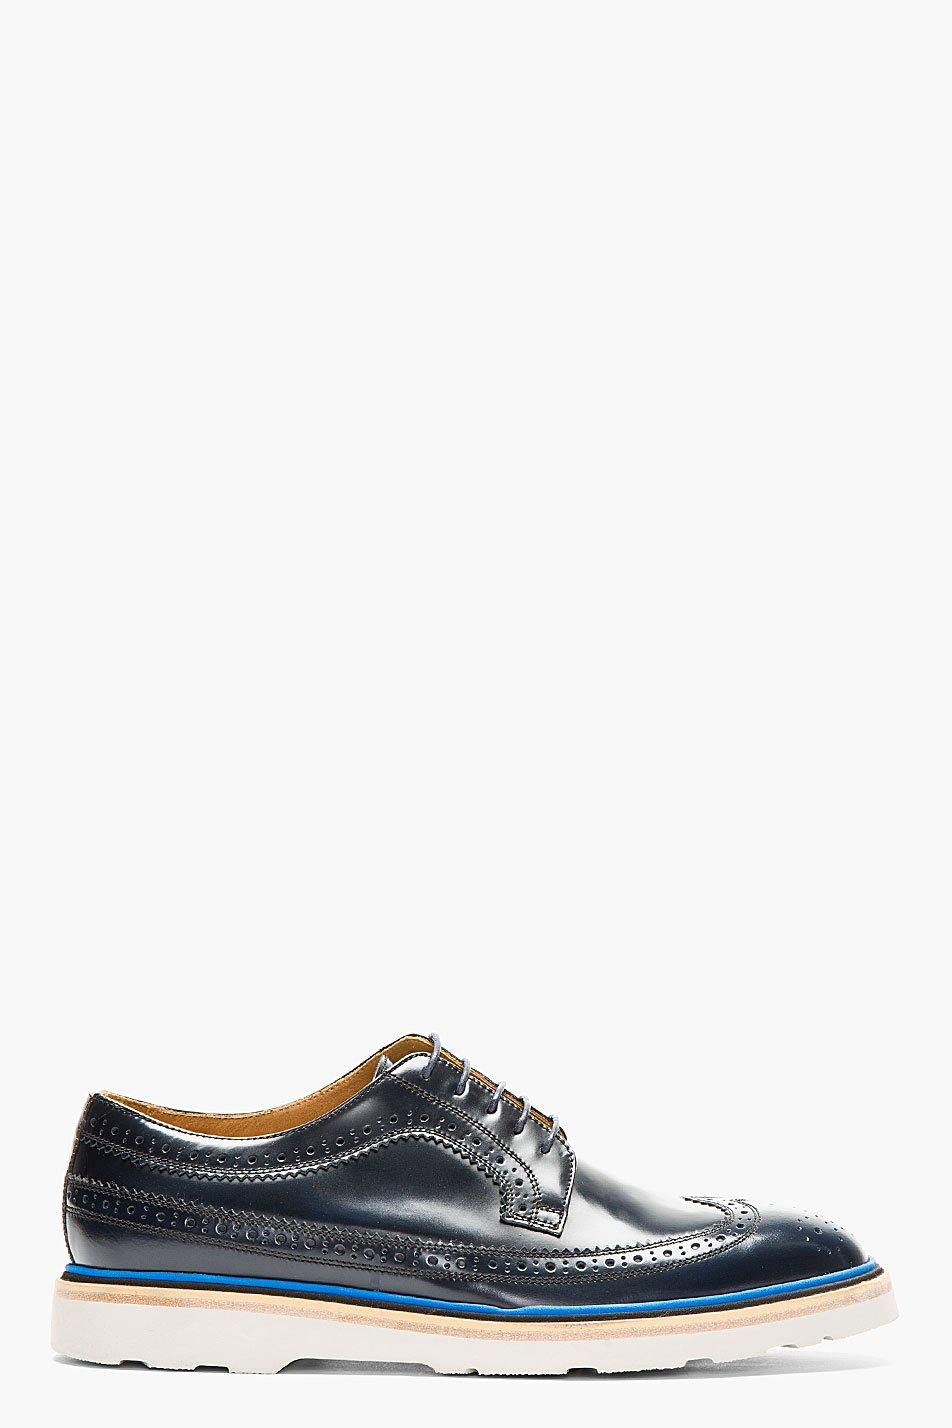 Paul smith black and blue stacked grand brogues